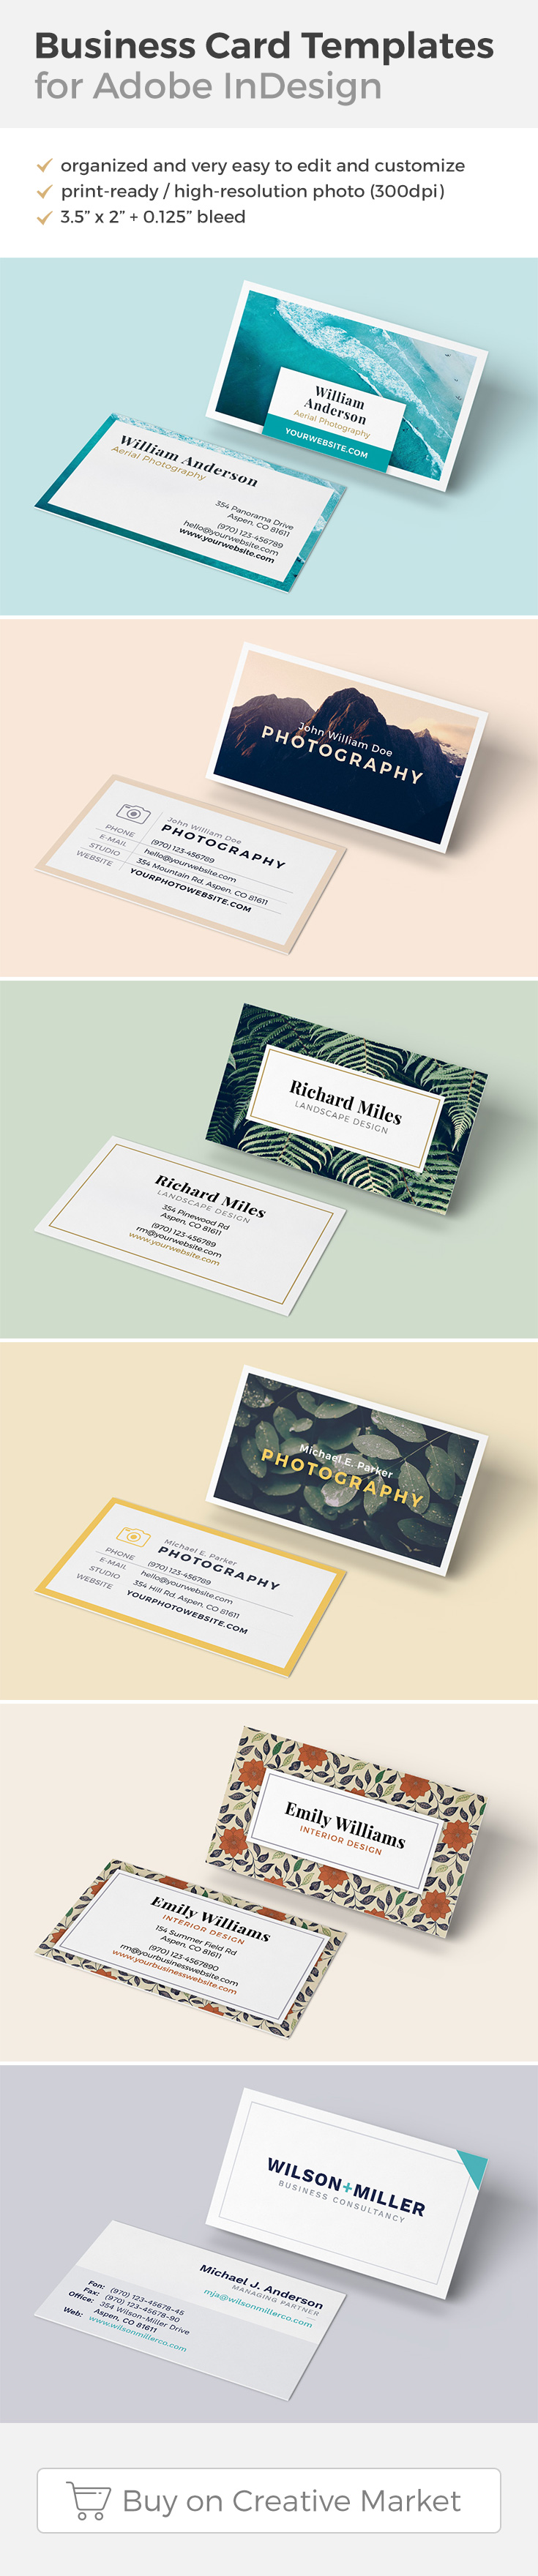 Clean and Elegant Business Card Templates for Adobe InDesign on ...